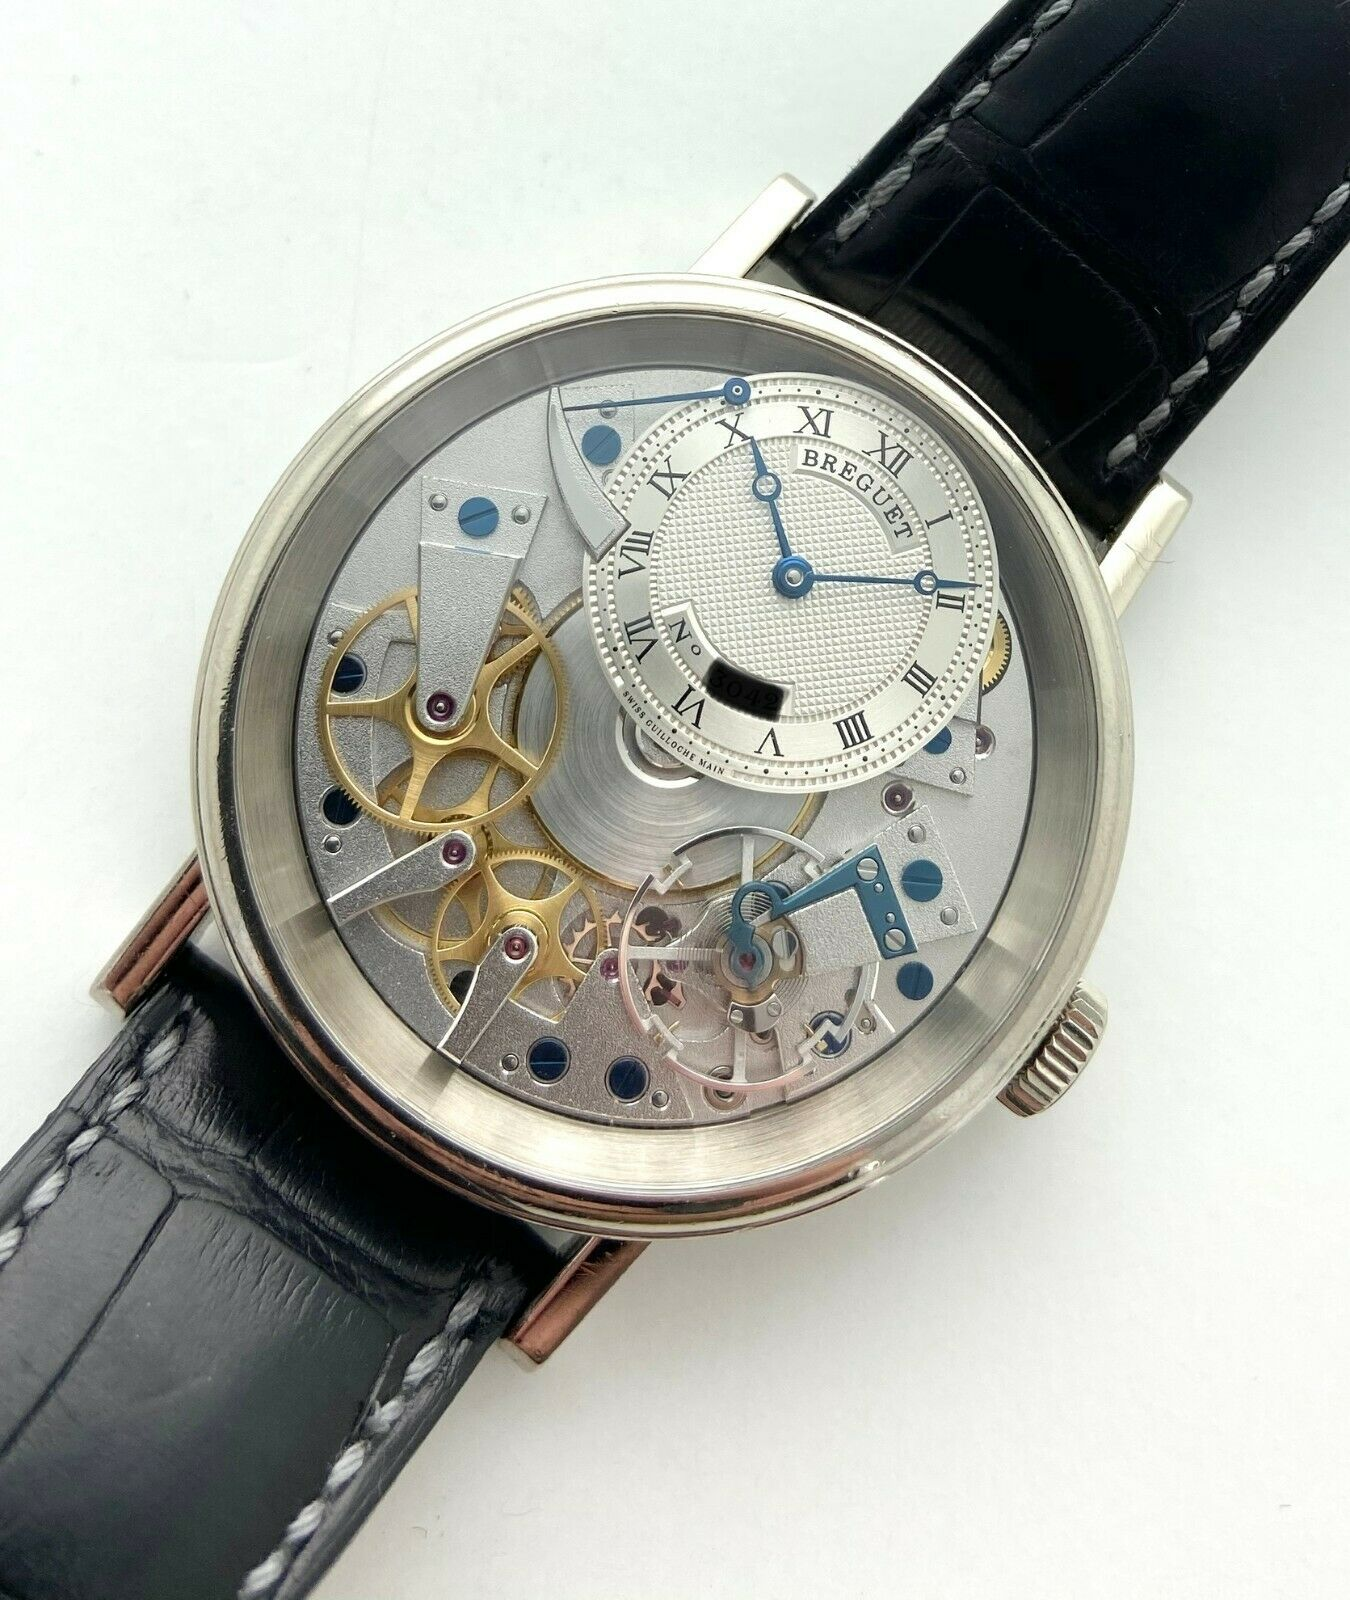 BREGUET – REF 7057 La Tradition 18k White Gold 41mm with Deployant Circa 2014 - watch picture 1